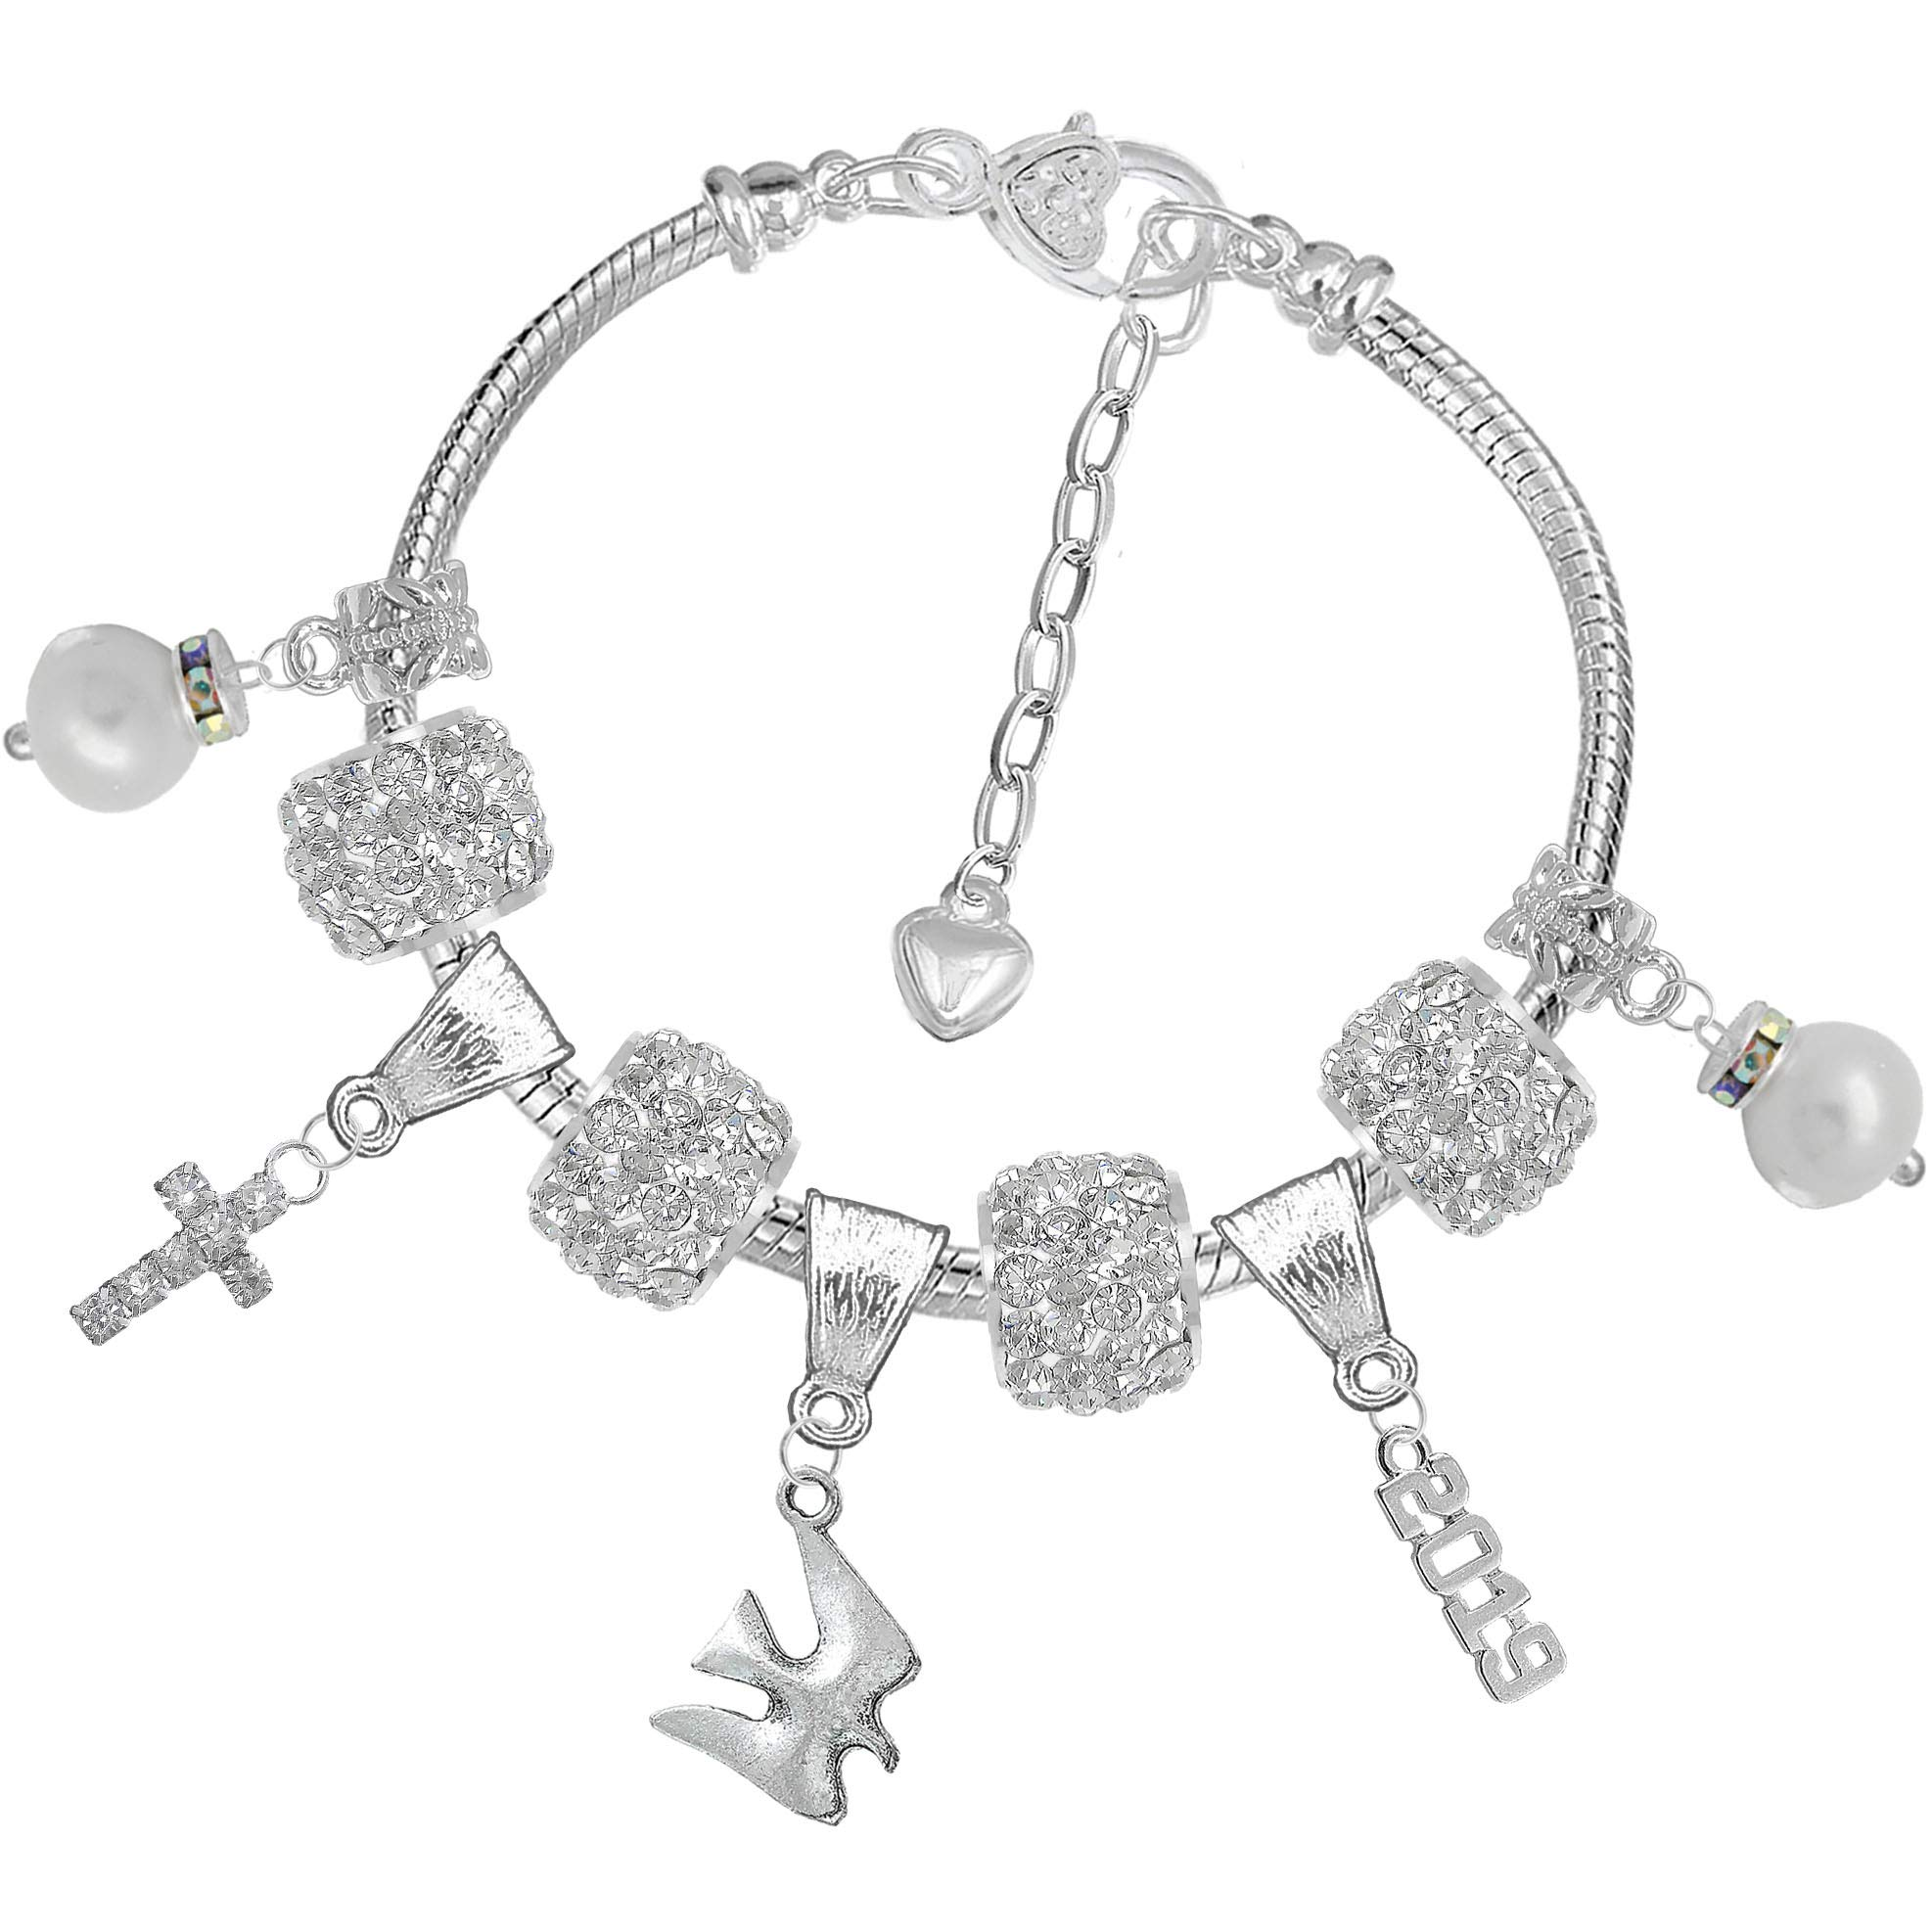 Girls 2019 Crystal Pearl Confirmation Charm Bracelet Gift Set